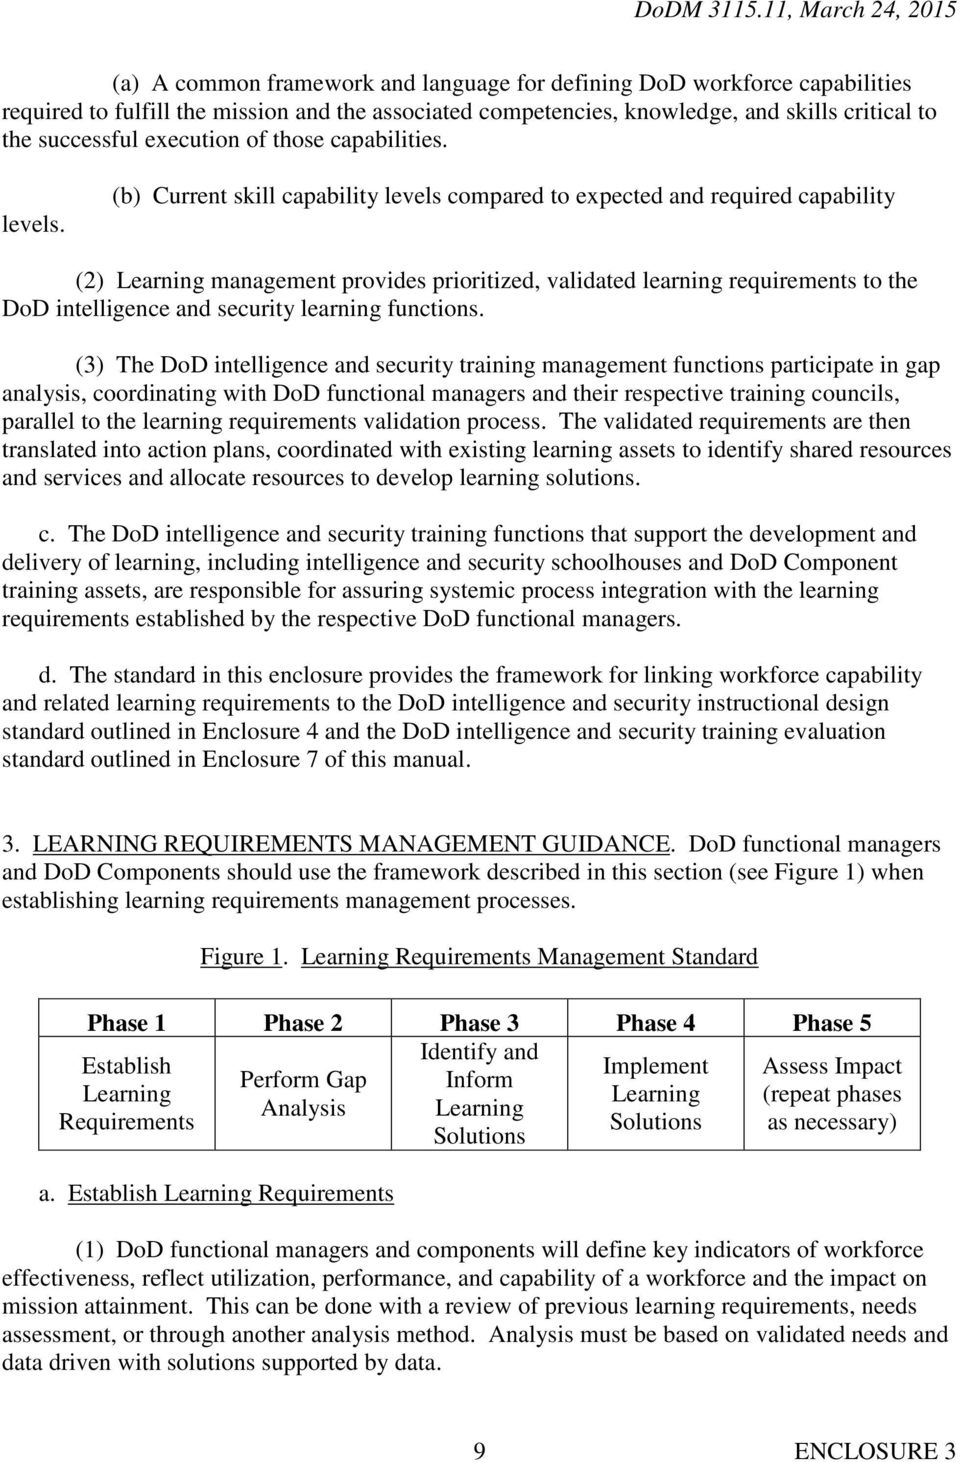 (b) Current skill capability levels compared to expected and required capability (2) Learning management provides prioritized, validated learning requirements to the DoD intelligence and security